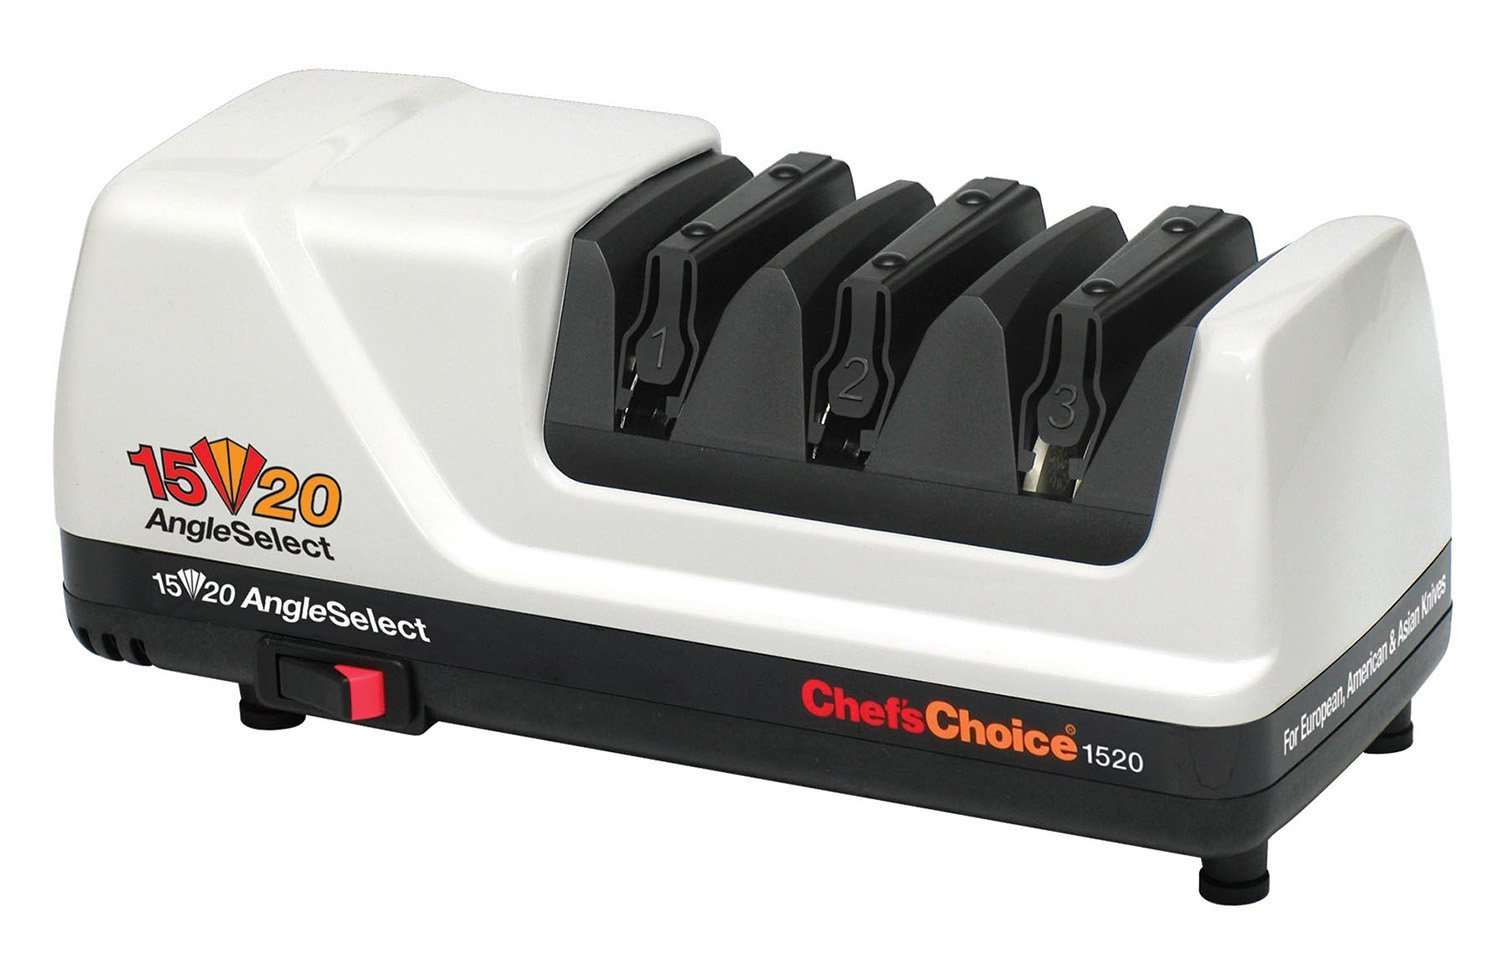 The Chef Choice 1520 Is Designed & Manufactured In The USA